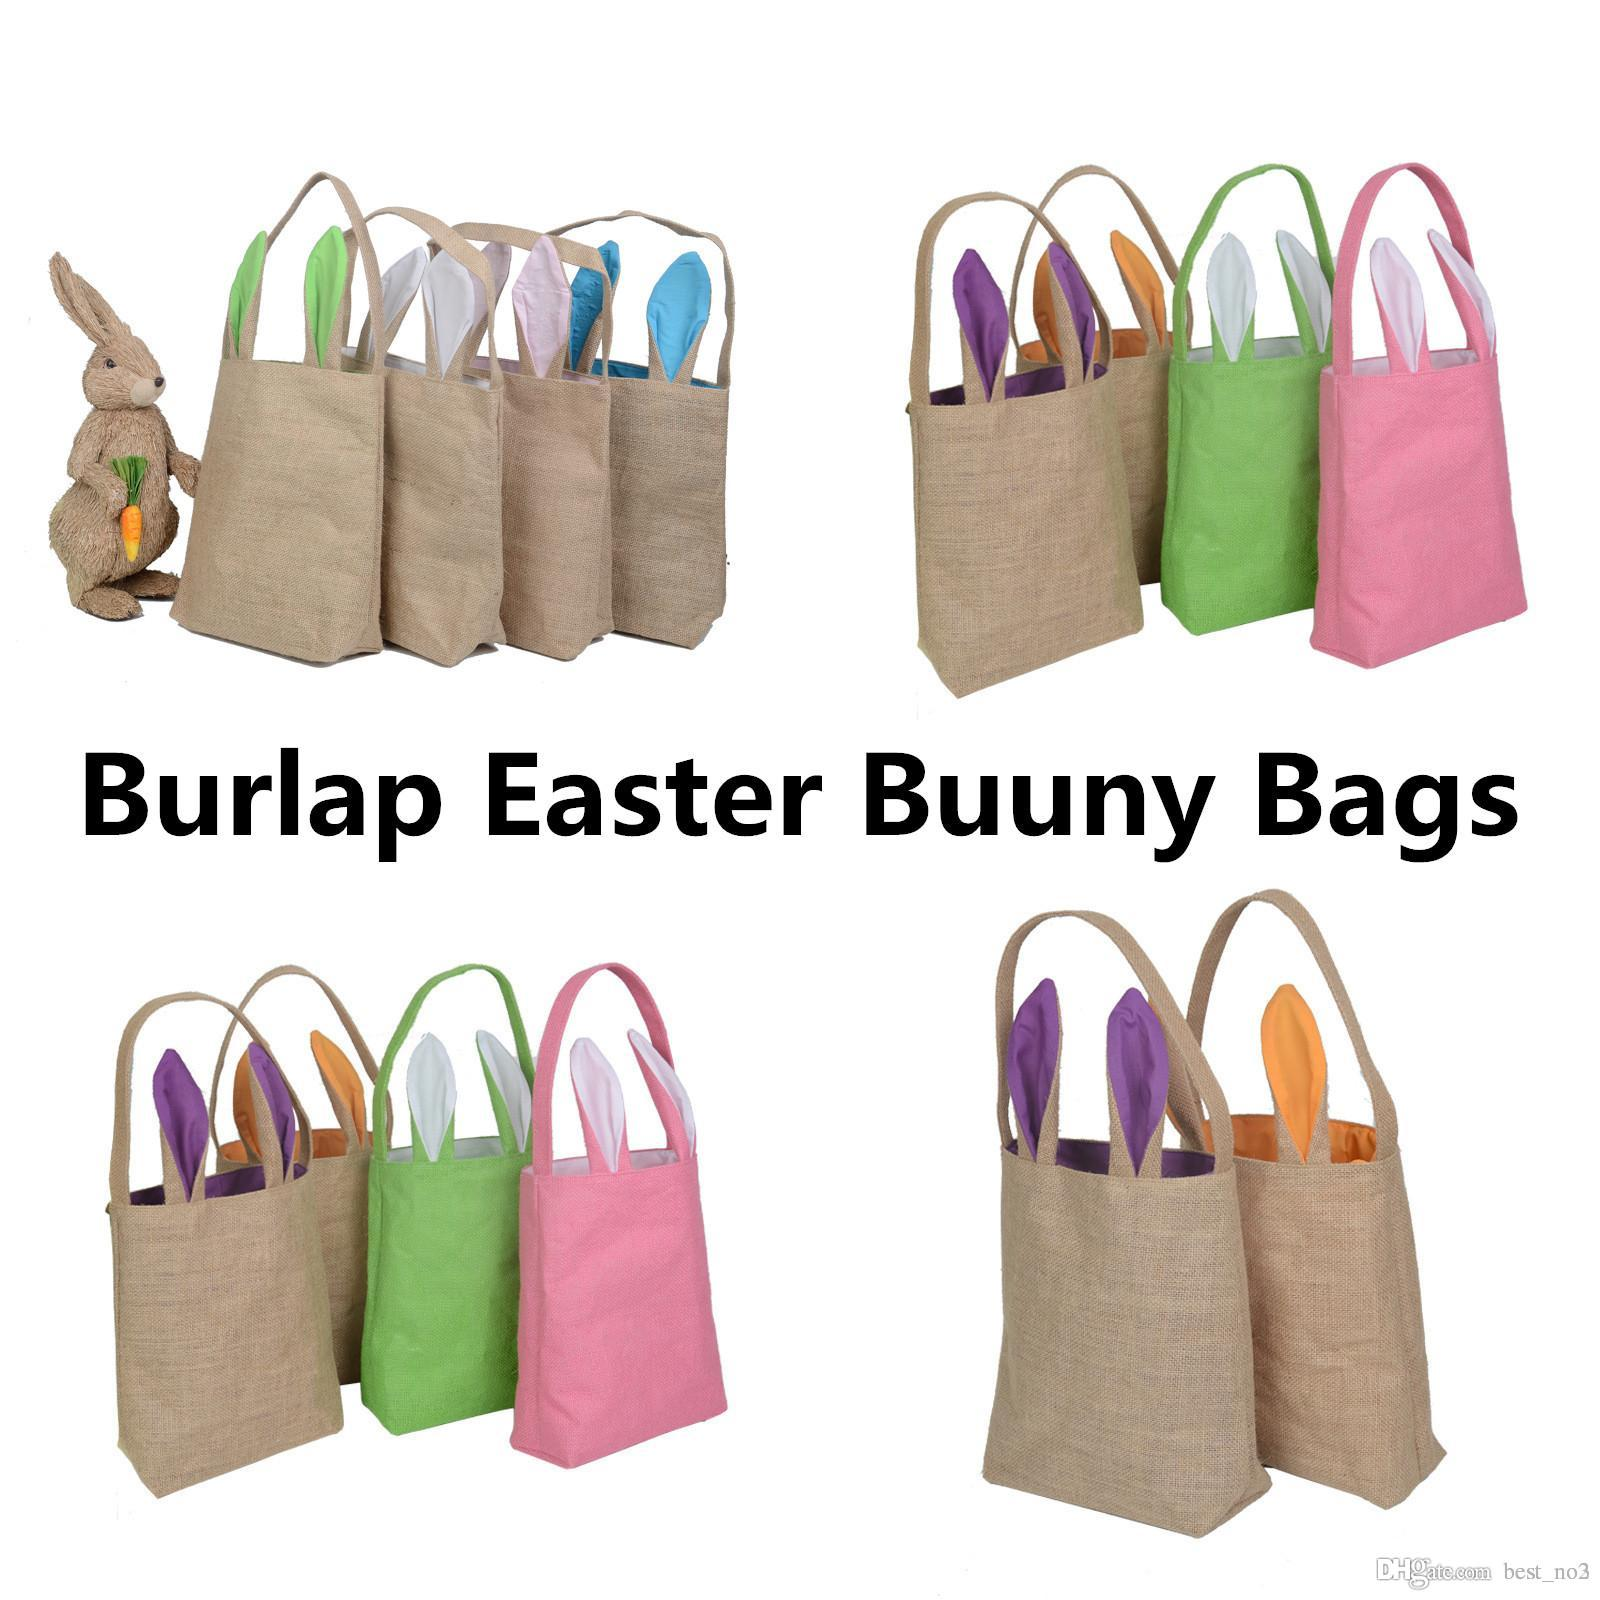 Burlap easter basket easter decorations for home bunny ear gift bags burlap easter basket easter decorations for home bunny ear gift bags with ears funny cute easter rabbit birthday party nar051 easter gift bags bunny ears negle